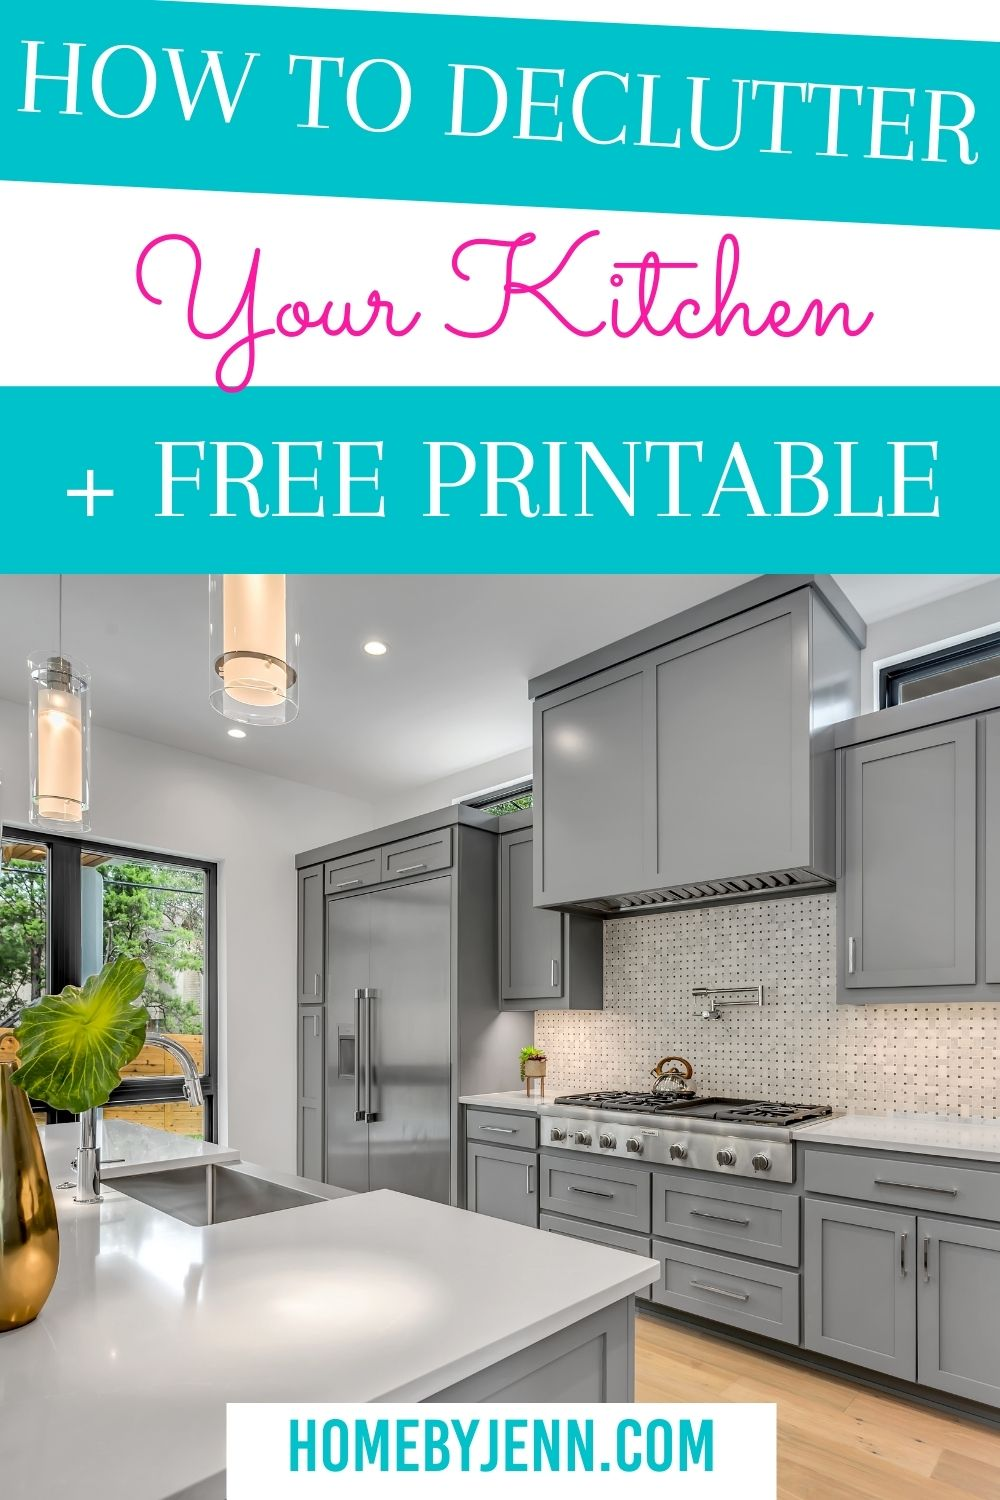 Decluttering the kitchen is an overwhelming job. Today you'll learn how to declutter the kitchen. To make this daunting task a little easier I've put together a checklist to help you declutter your kitchen. via @homebyjenn